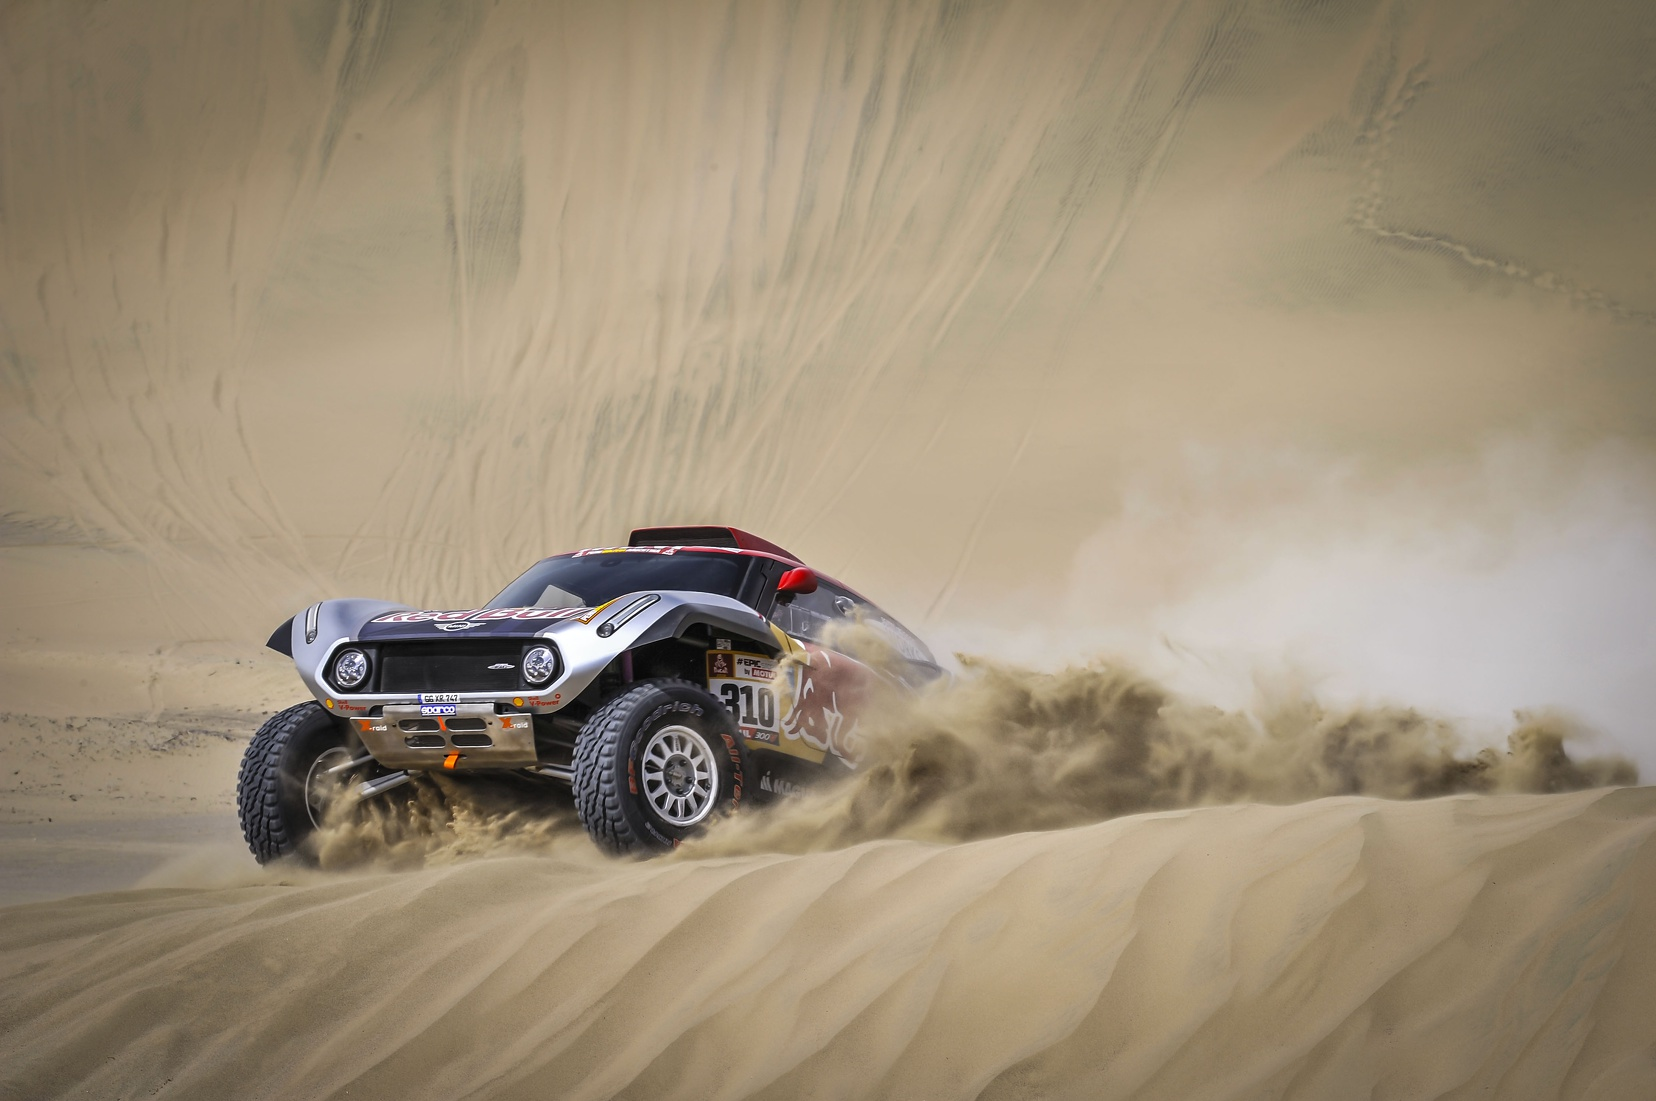 X-raid MINI JCW Team - 2019 Dakar